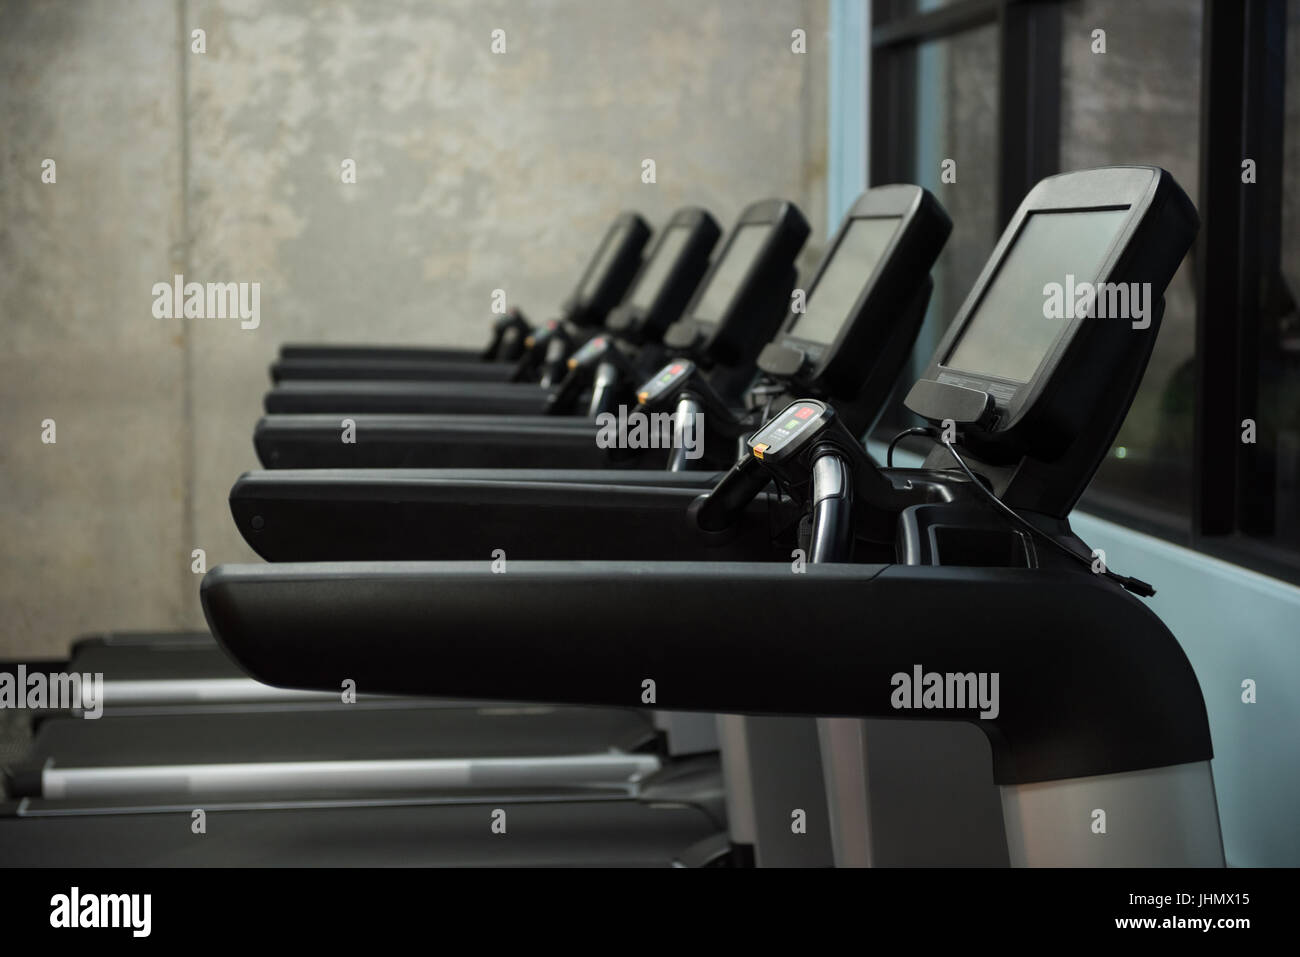 Treadmills in row against wall at empty gym - Stock Image